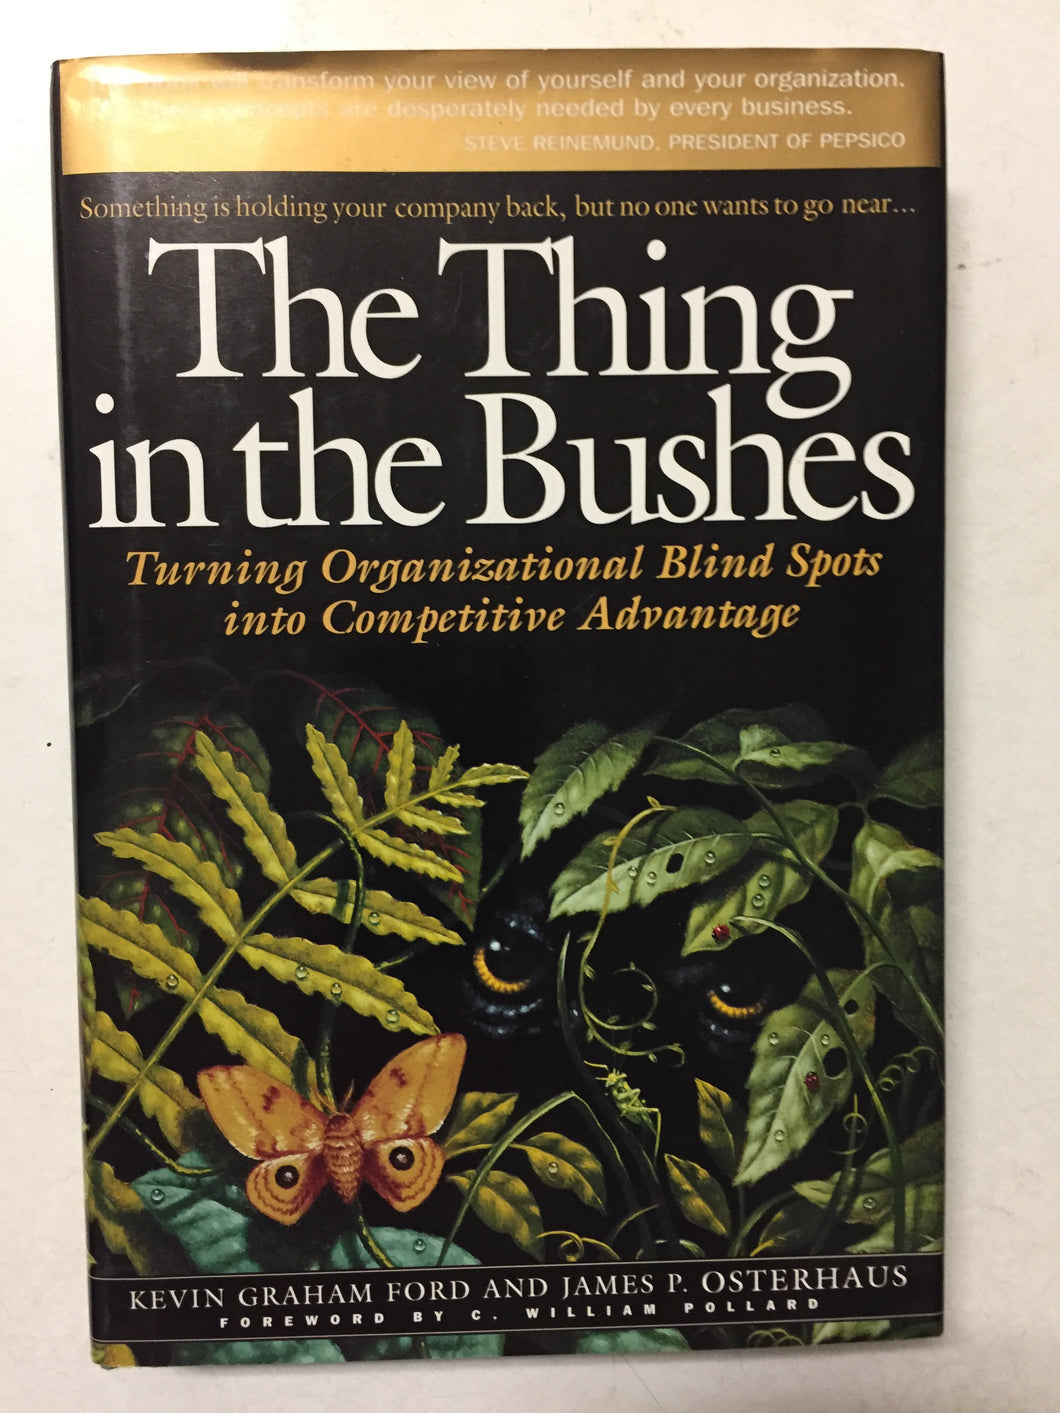 The Thing in the Bushes Turning Organizational Blind Spots into Competitive Advantage - Slickcatbooks